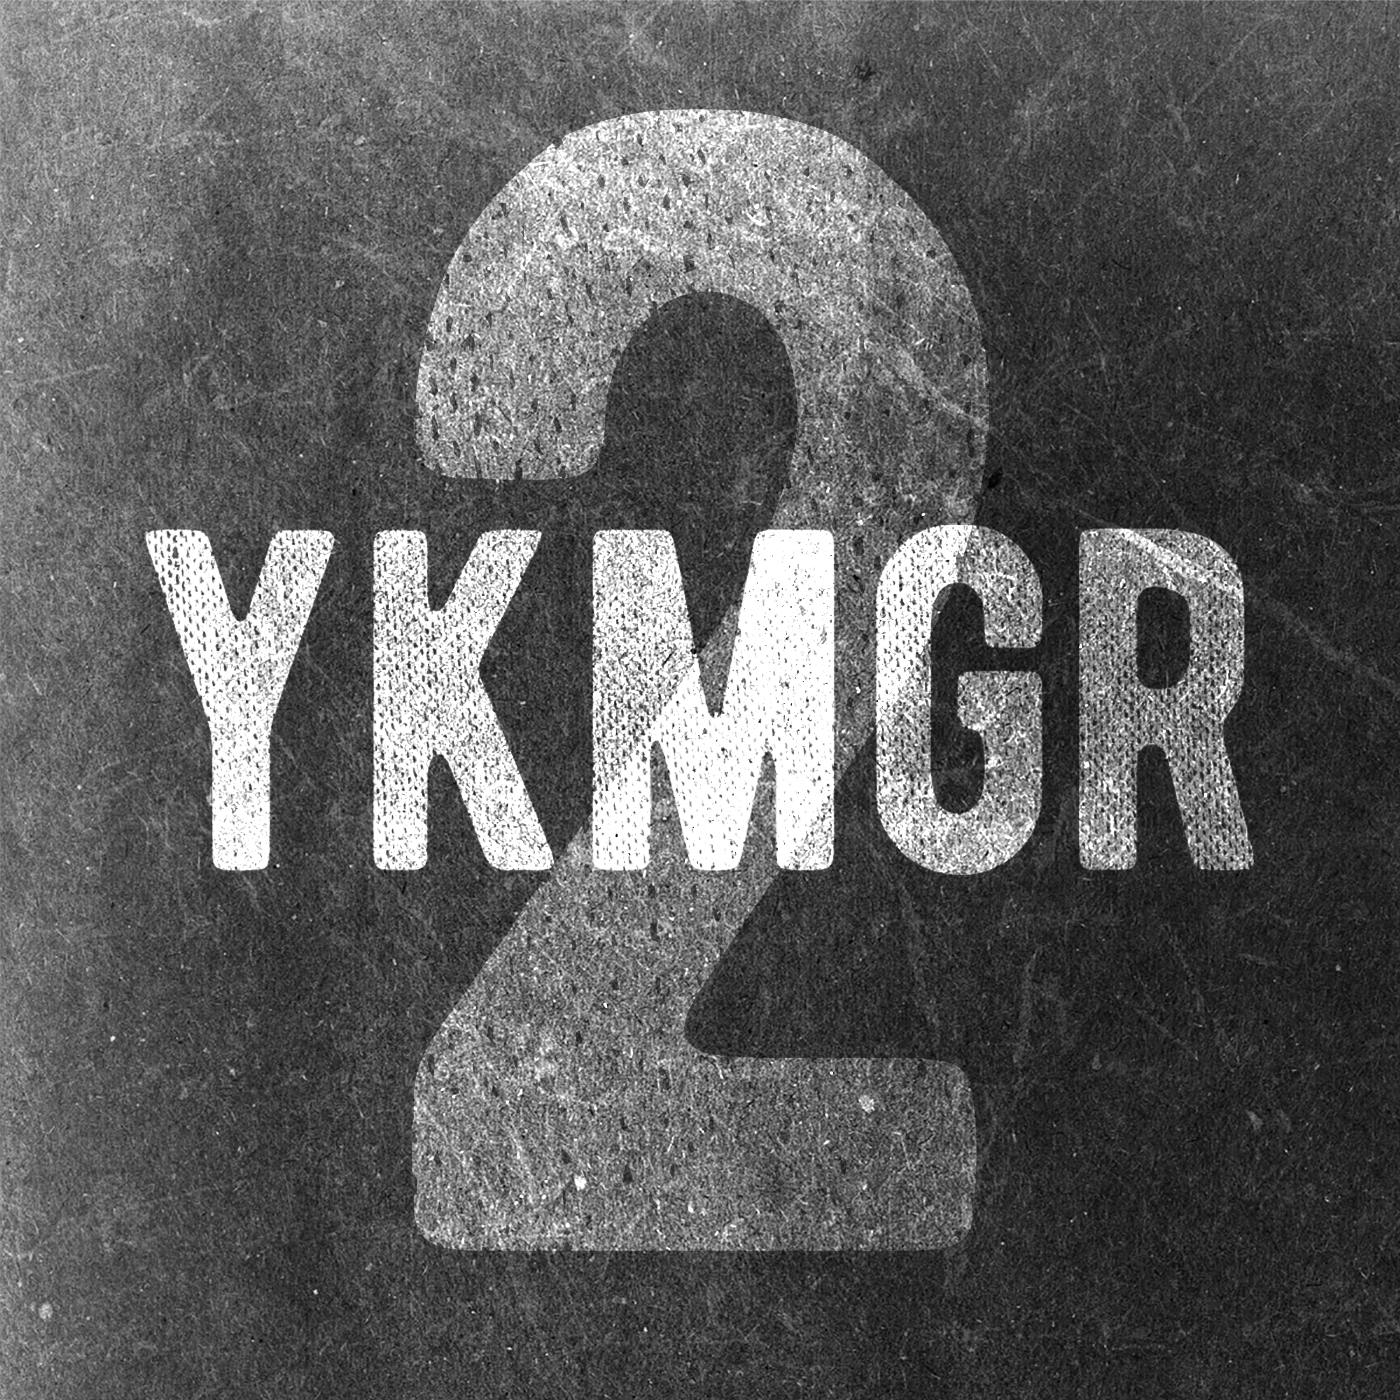 YKMGR 02.png